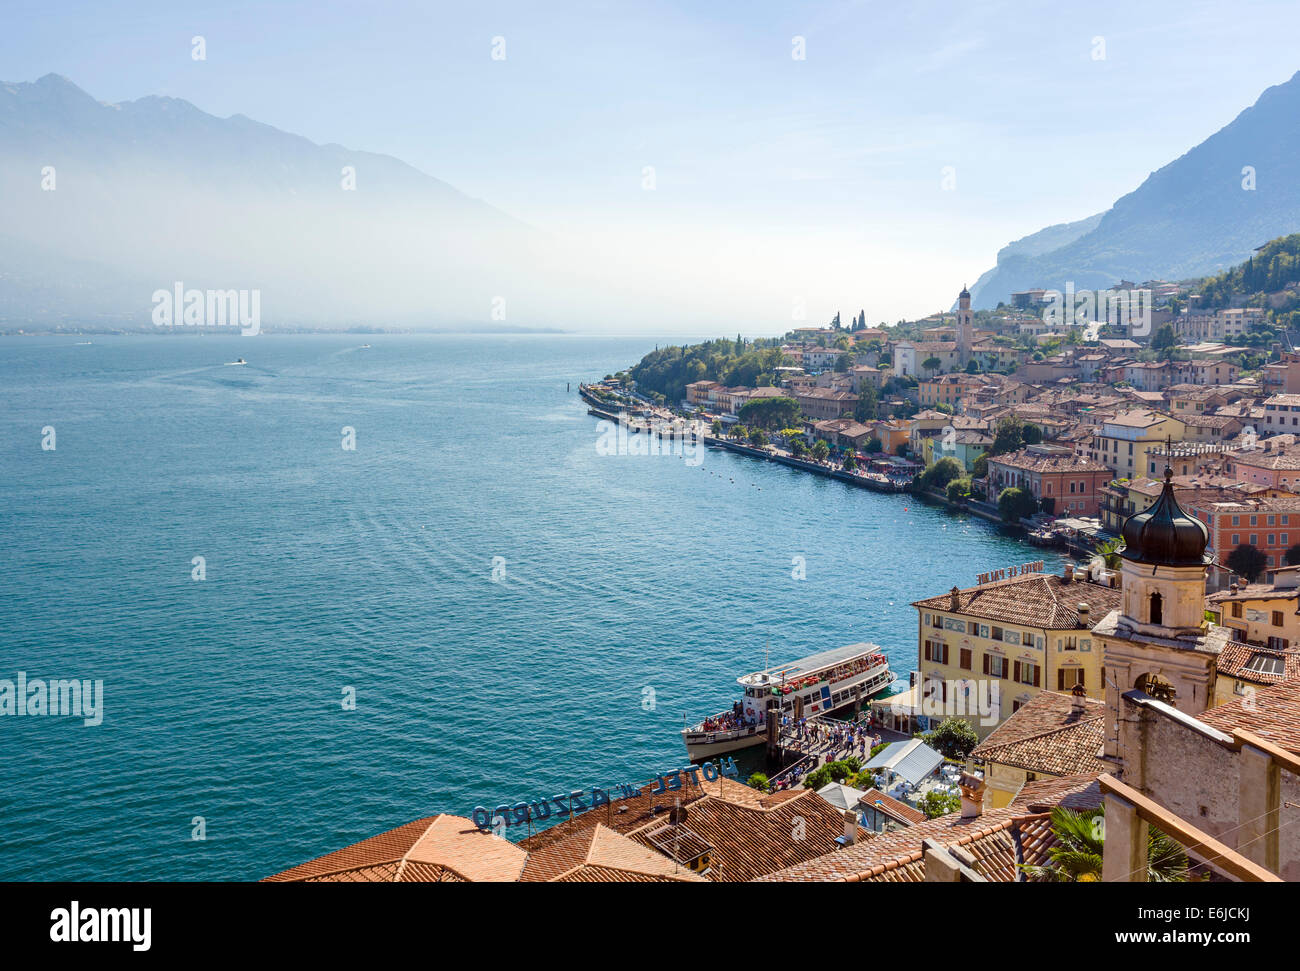 Ferry docked at the harbour in Limone sul Garda, Lake Garda, Lombardy, Italy - Stock Image